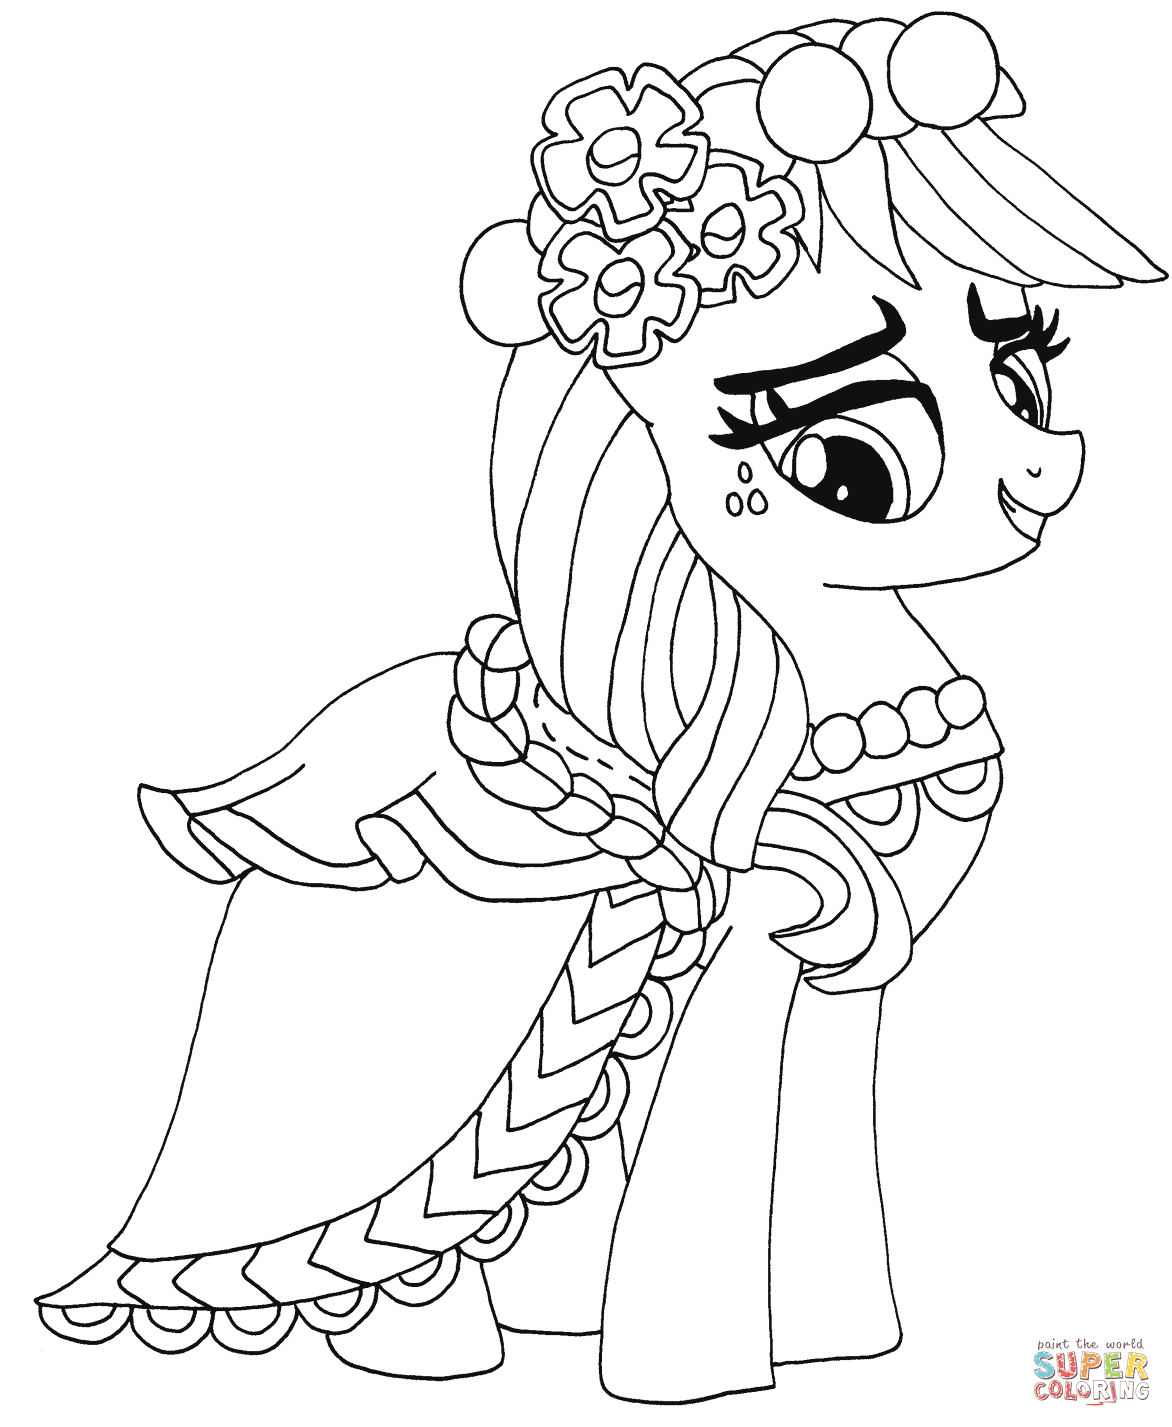 My Little Pony Applejack From My Little Pony Coloring Page My